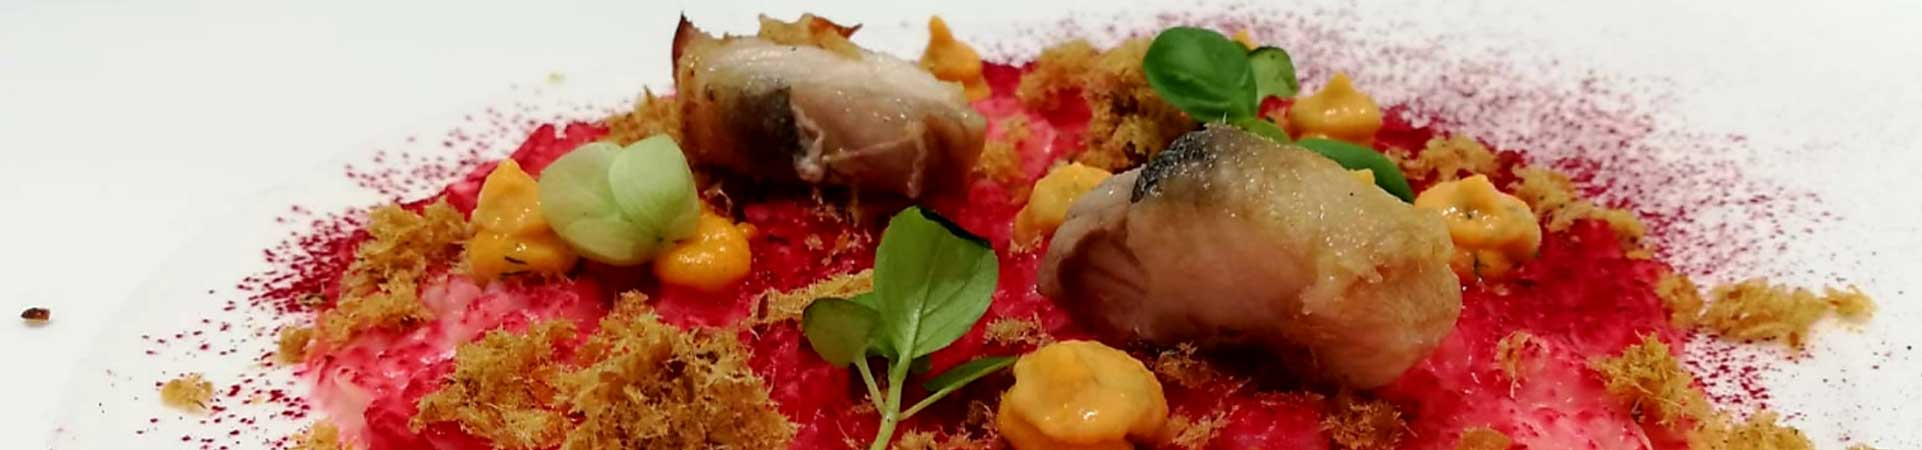 The best cuisine in Umbria: Tipico Osteria dei Sensi & Locanda del Capitano -  Restaurants in Montone, Umbria Sharing Restaurant Italy